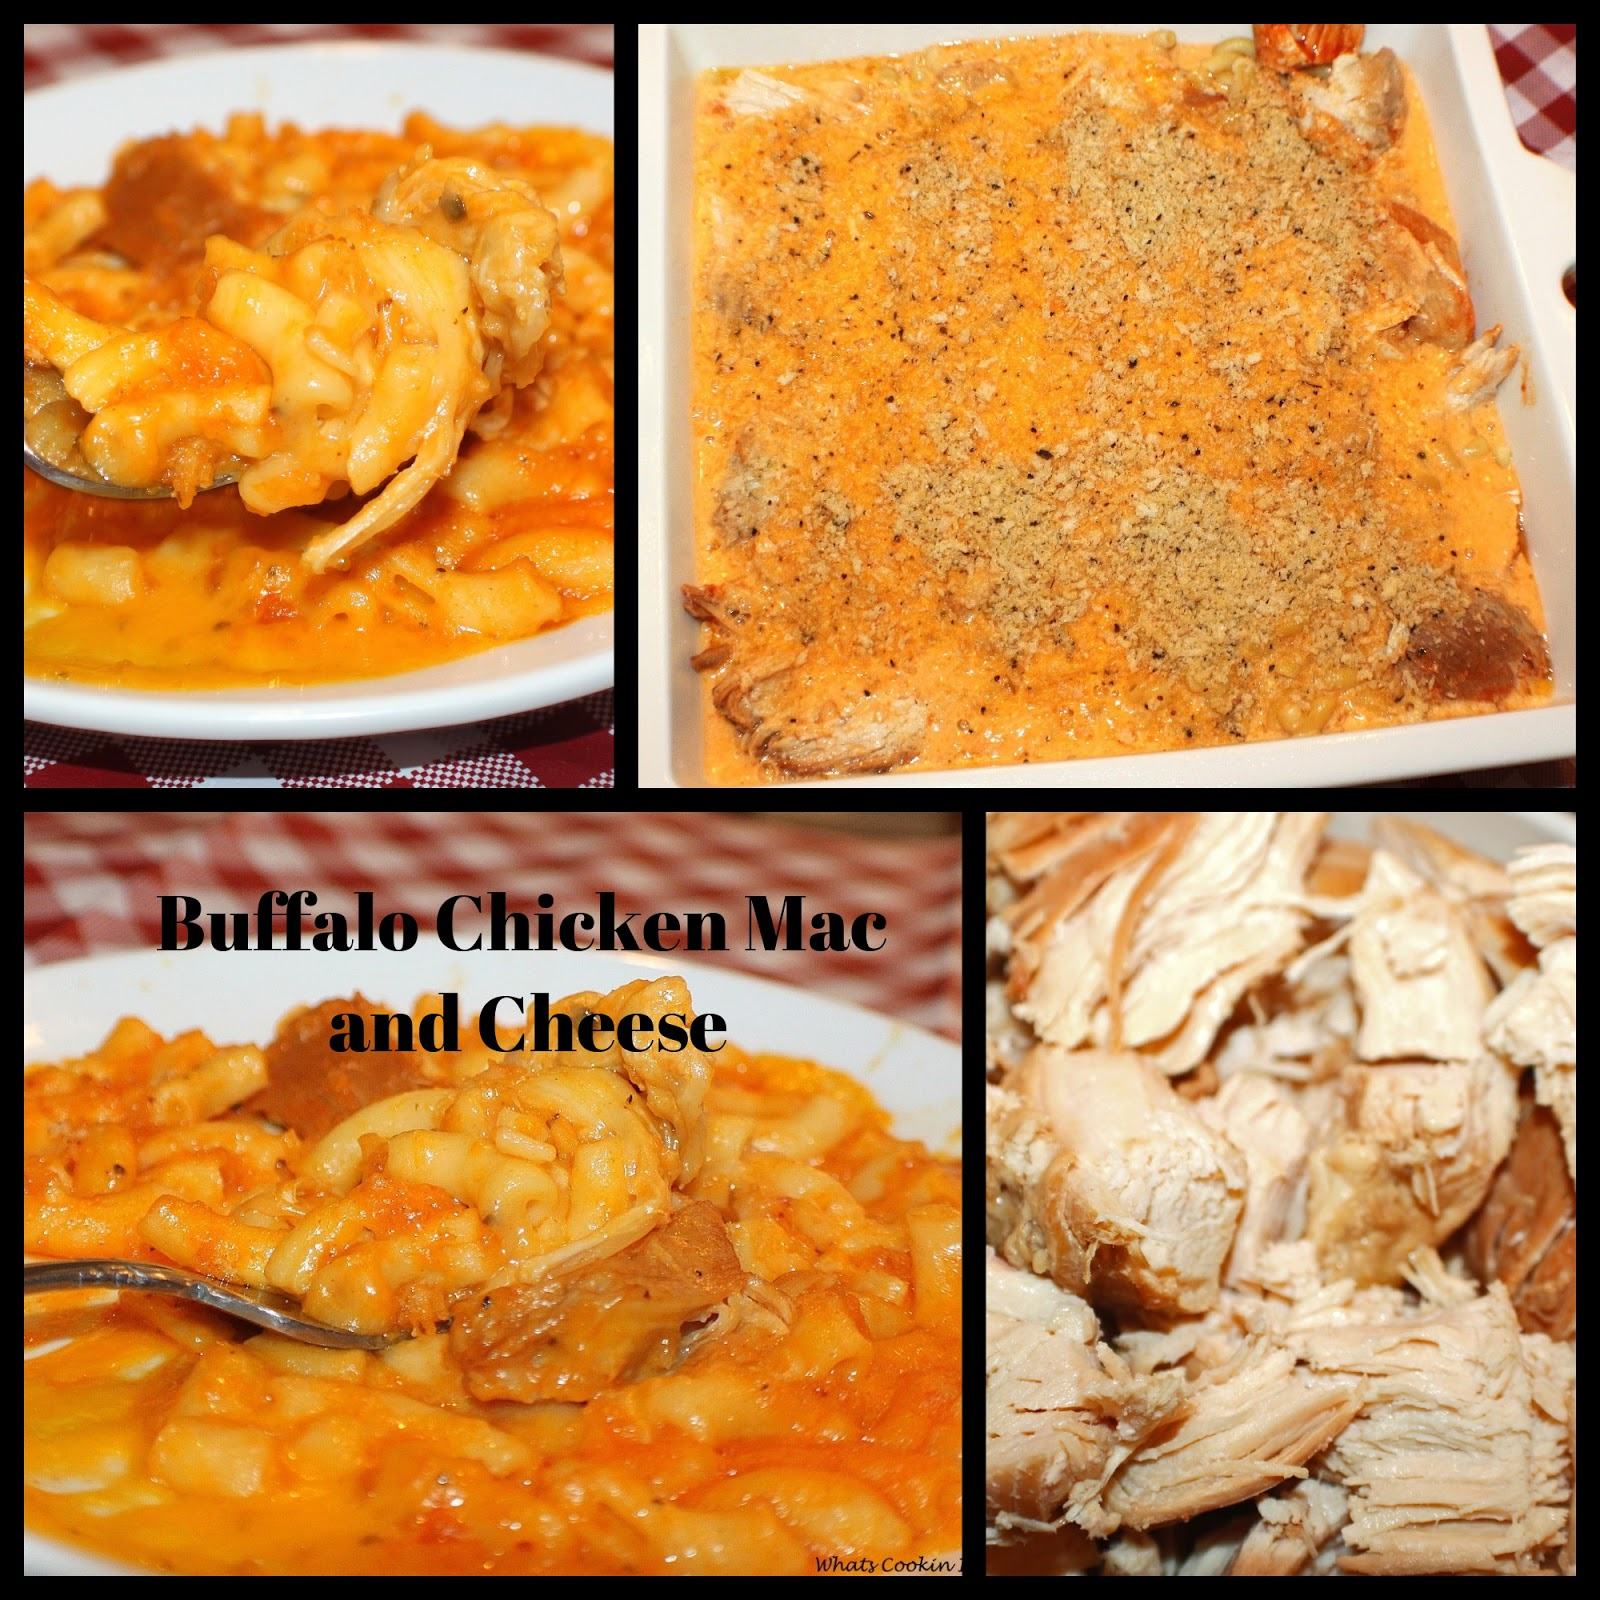 Collage of Buffalo Chicken using boneless Breast meat in a macaroni and cheese casserole with hot sauce and lots of cheese